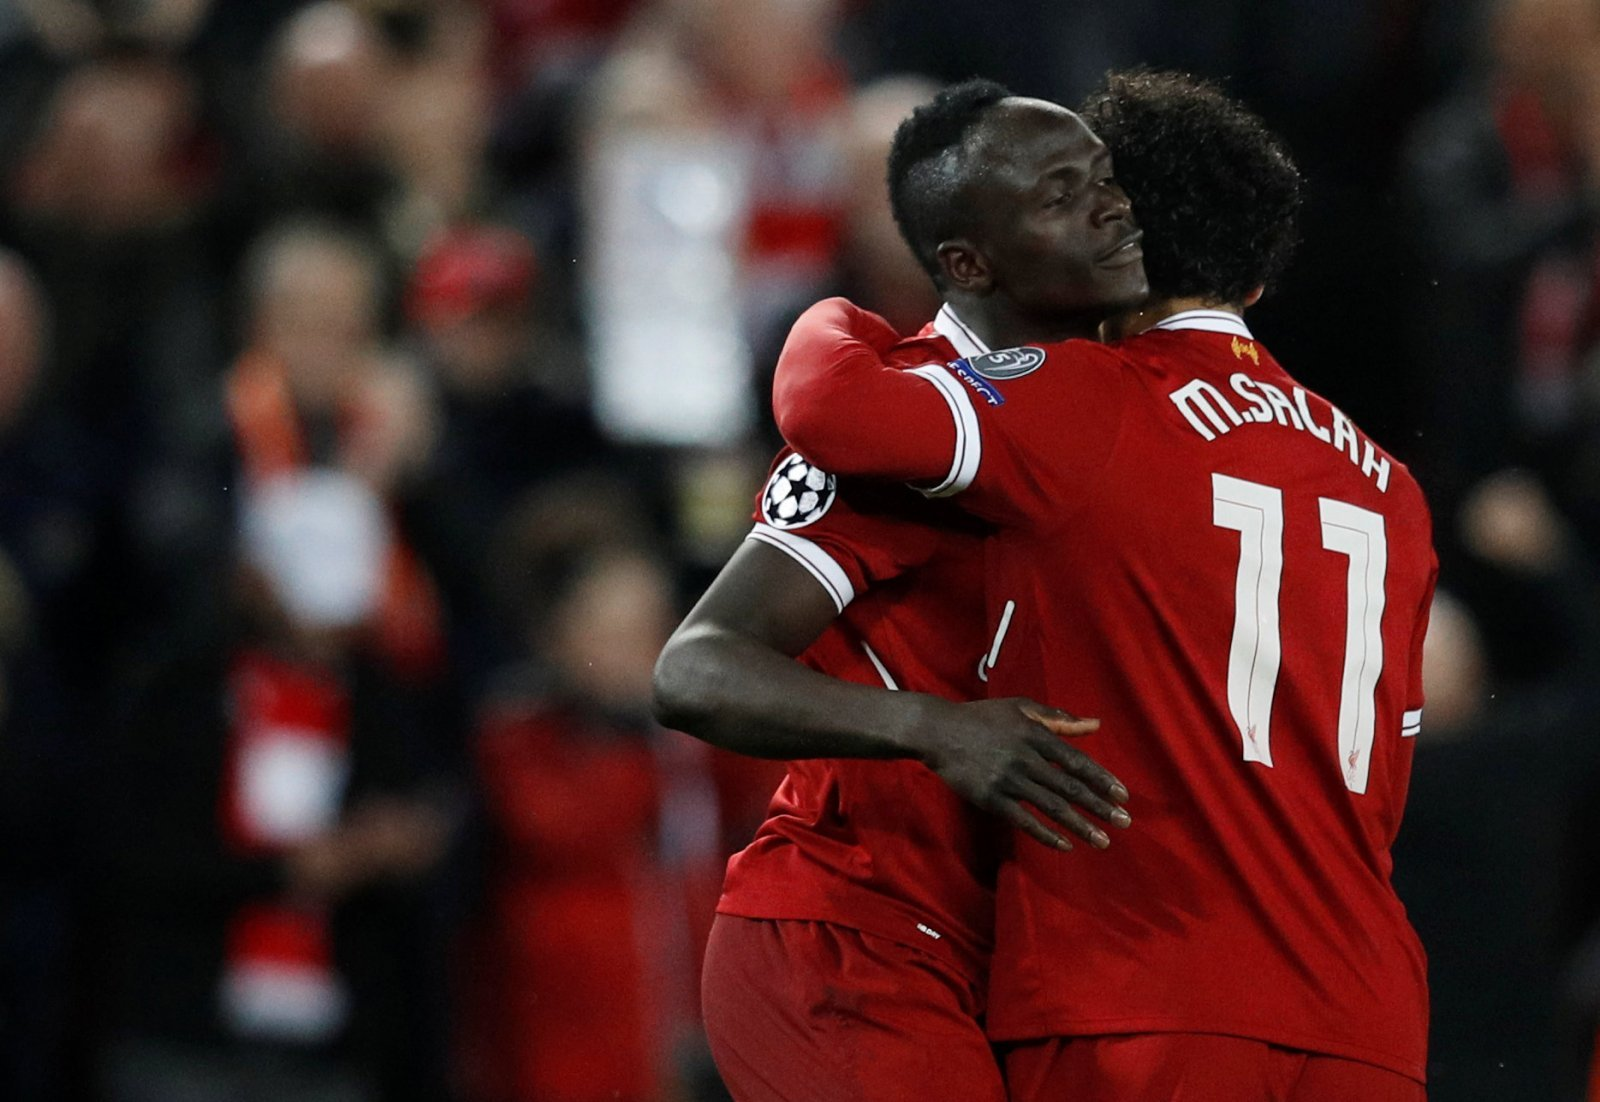 Liverpool fans are so right: Mo Salah's brilliance shouldn't overshadow just how good Sadio Mane is